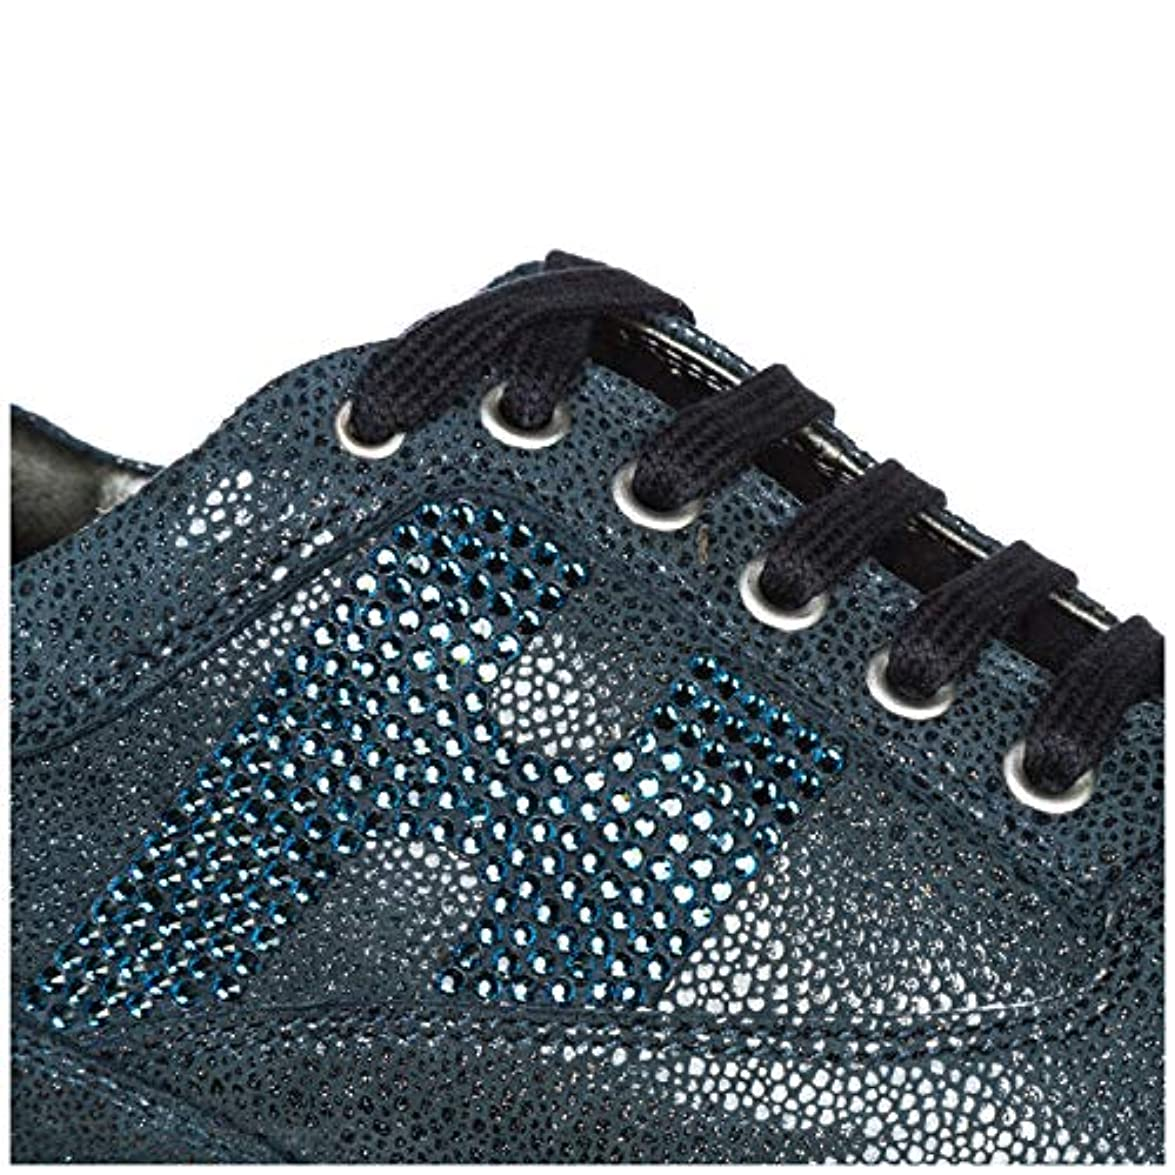 Hogan Sneakers Interactive Donna Notte